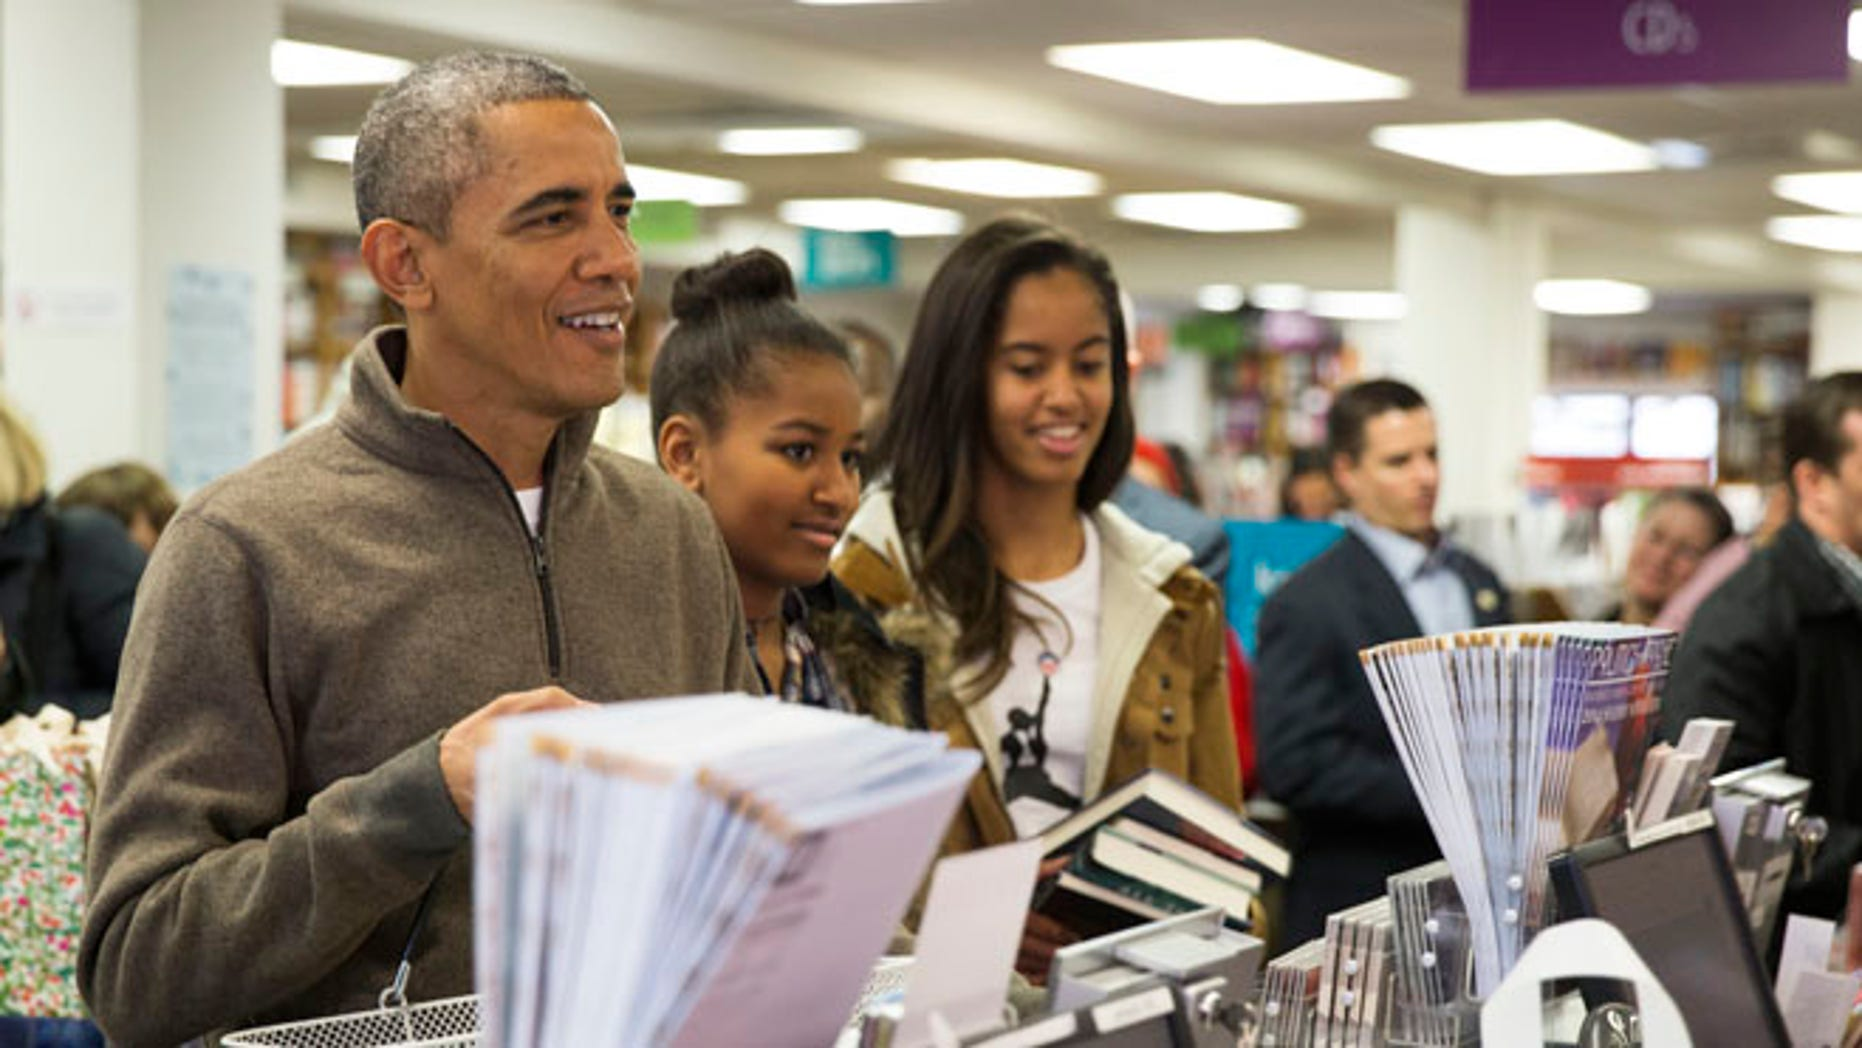 Nov. 29, 2014: President Obamashops with daughters, Sasha, center, and Malia, at Politics and Prose bookstore, in Washington, D.C.